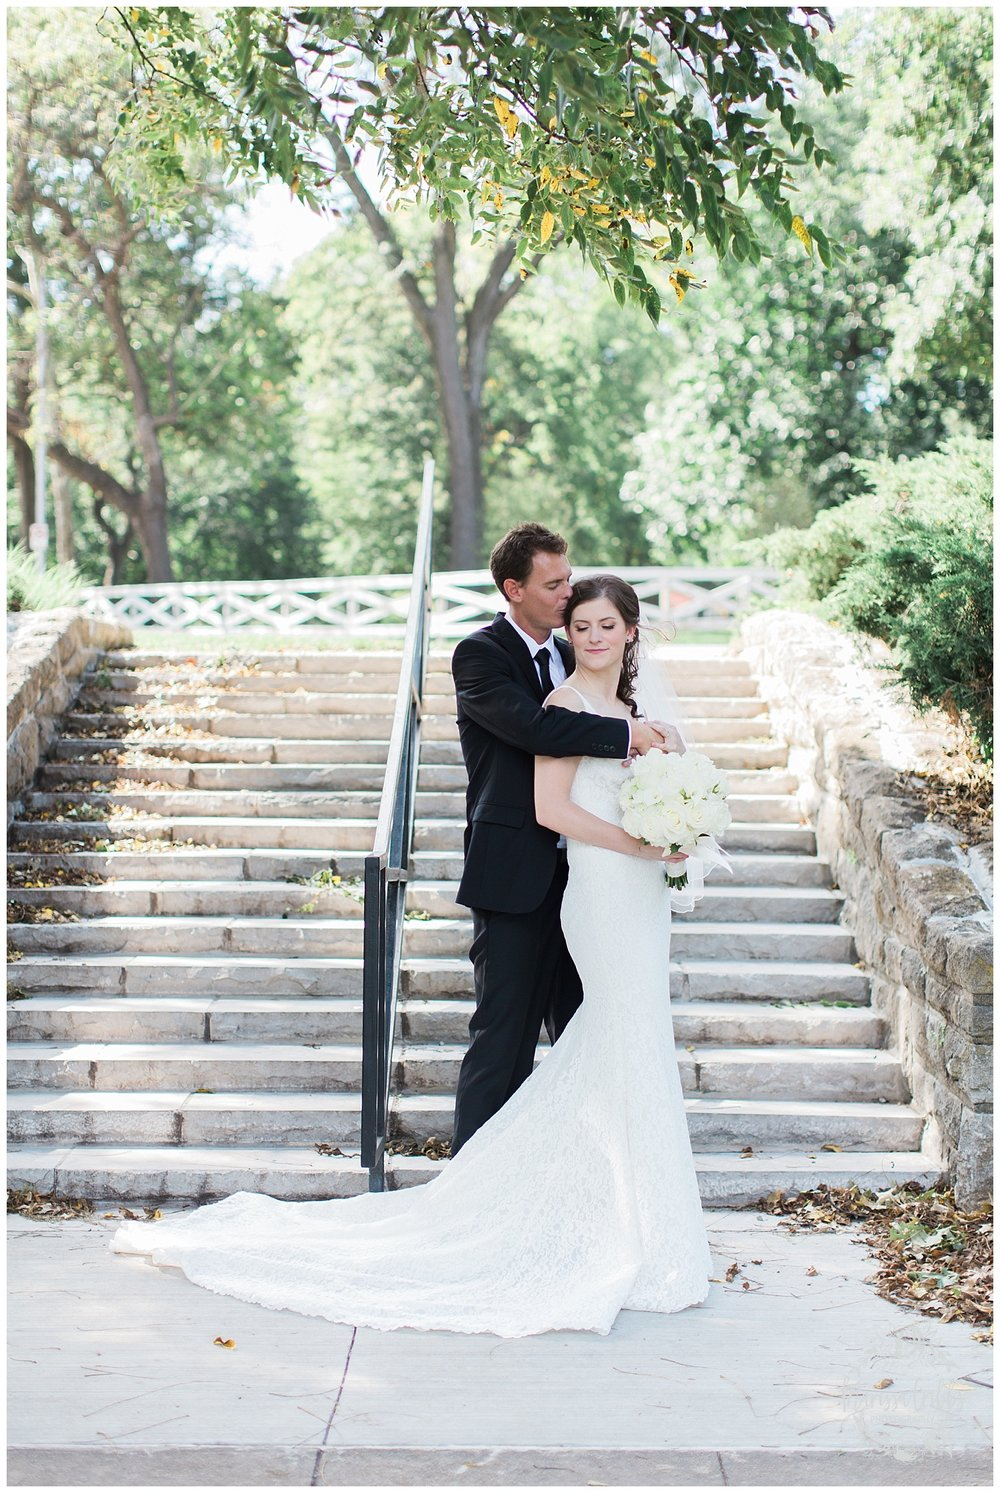 TERRACE ON GRAND WEDDING | MEGHAN & DAVYD | MARISSA CRIBBS PHOTOGRAPHY | CELEEBRATIONS OF LOVE_2945.jpg